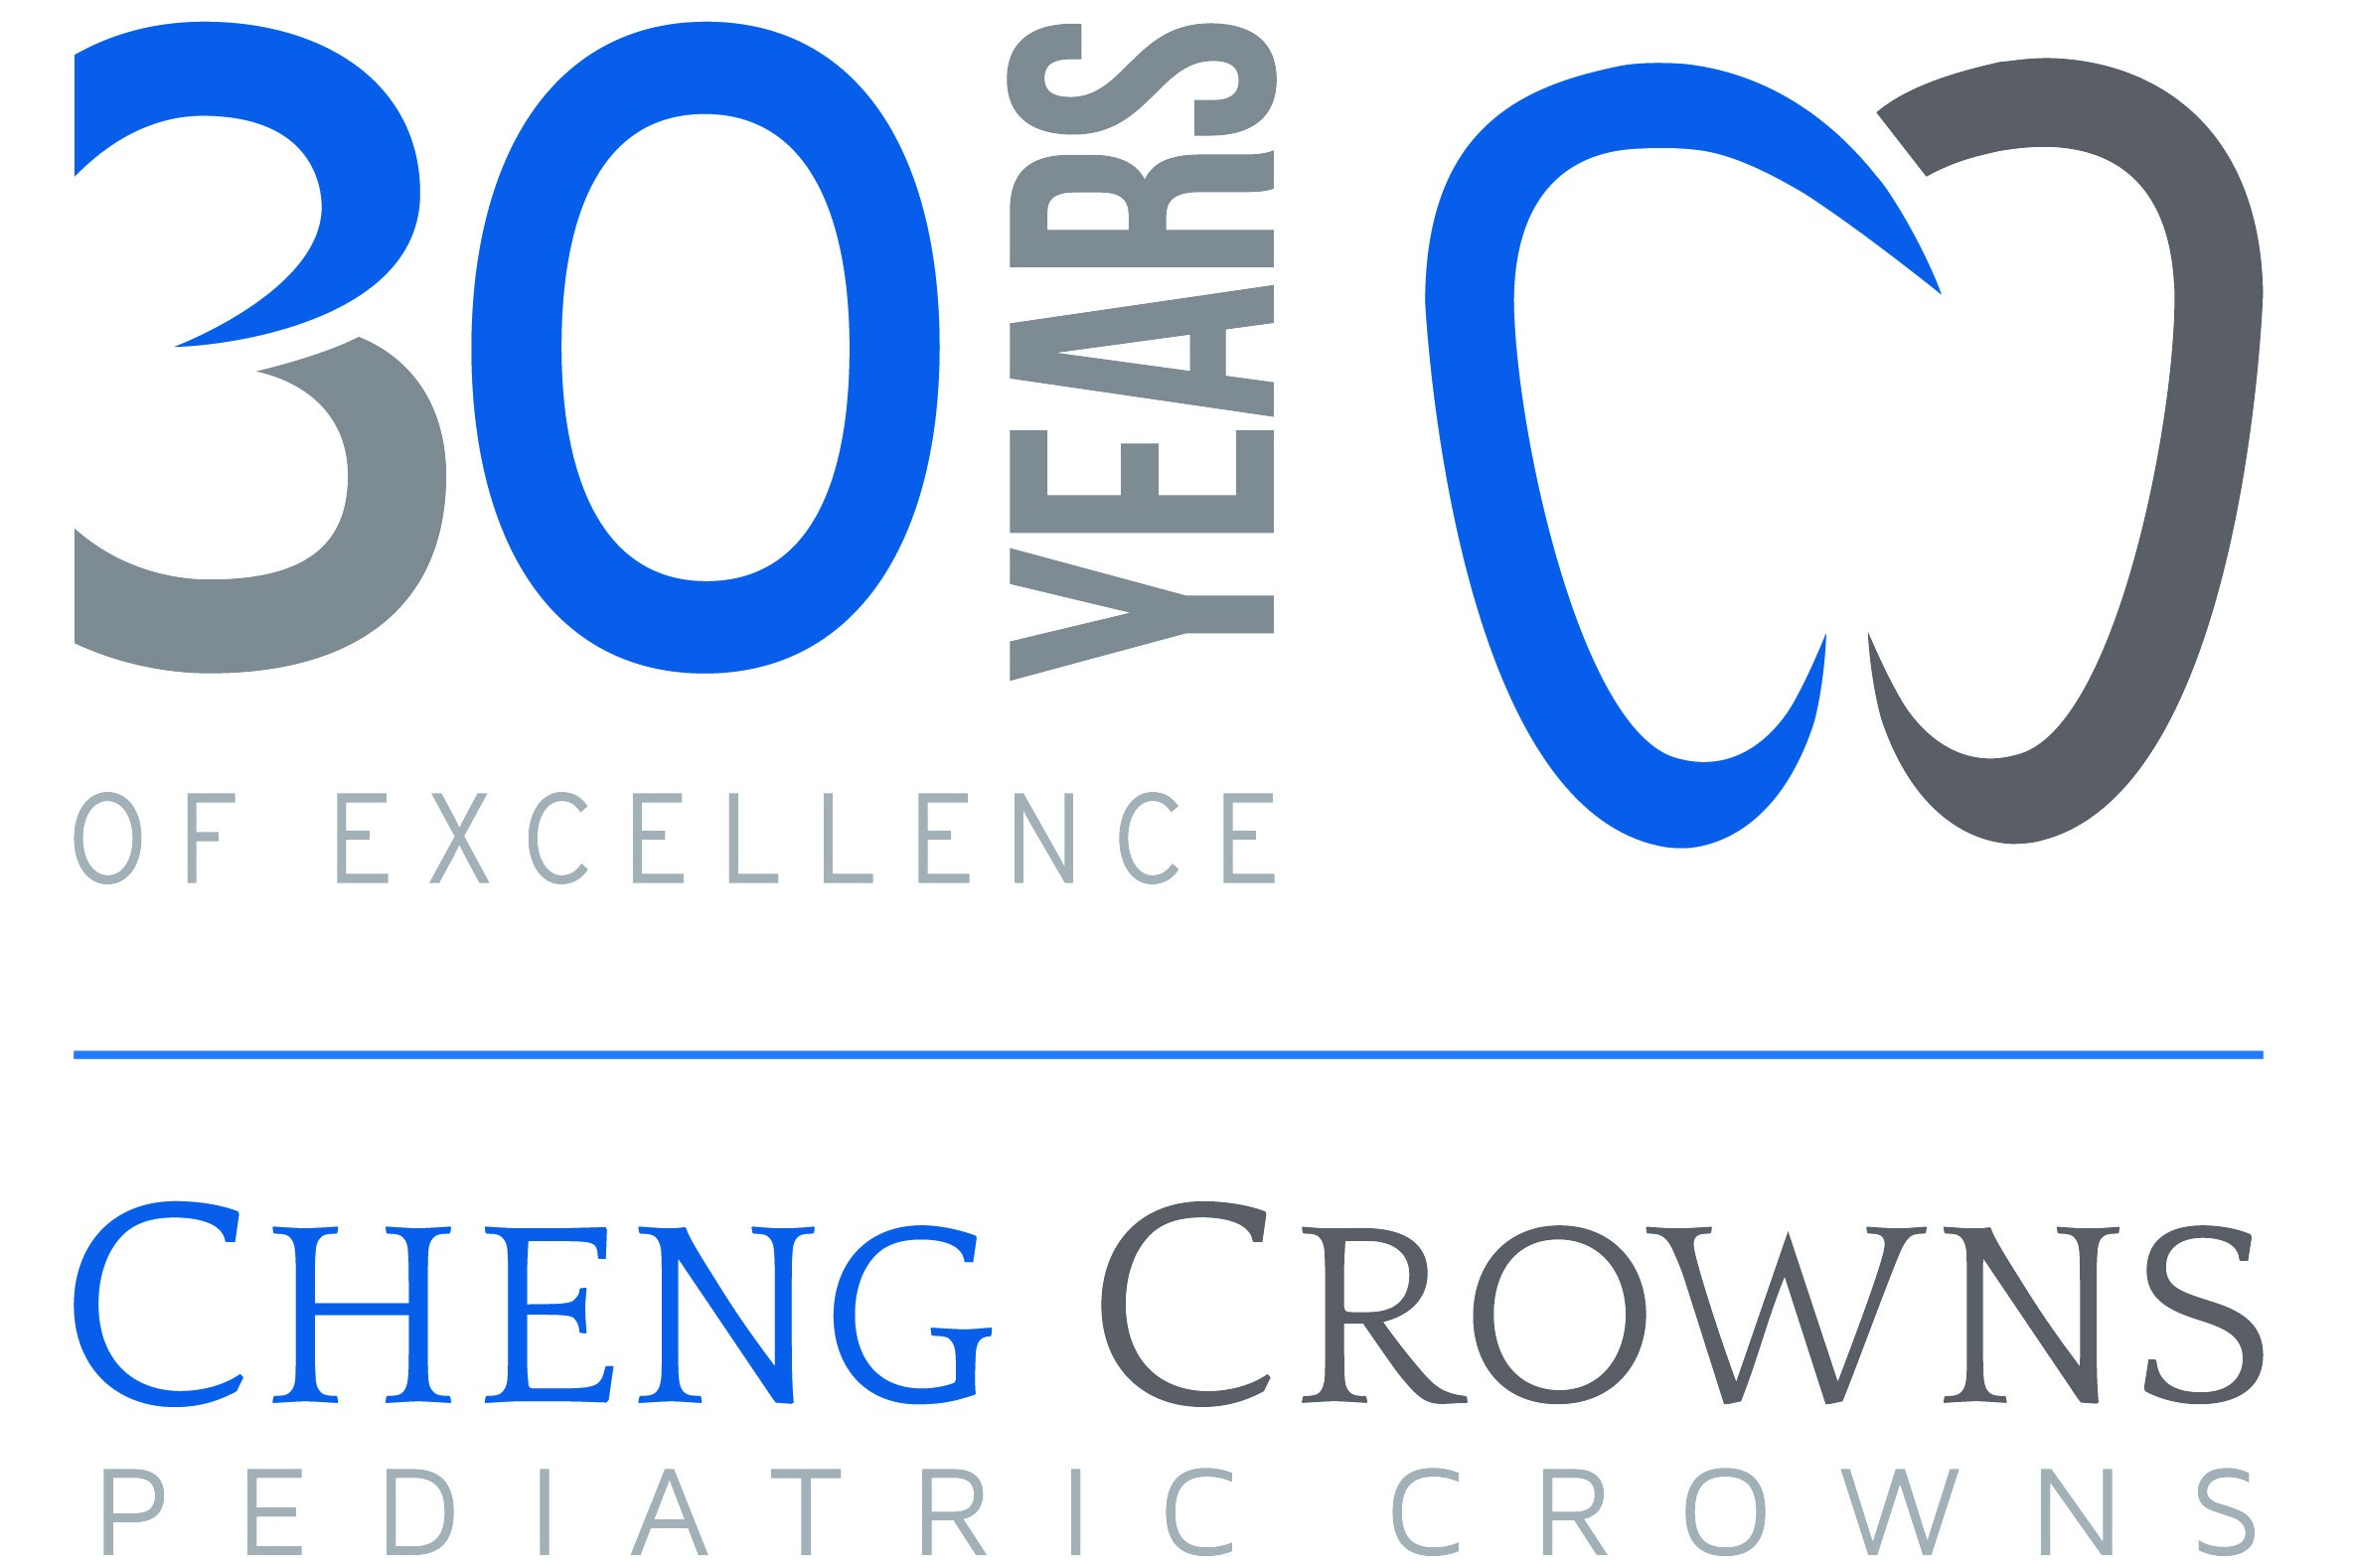 75235_Cheng Crowns 4x6_Logo_copy